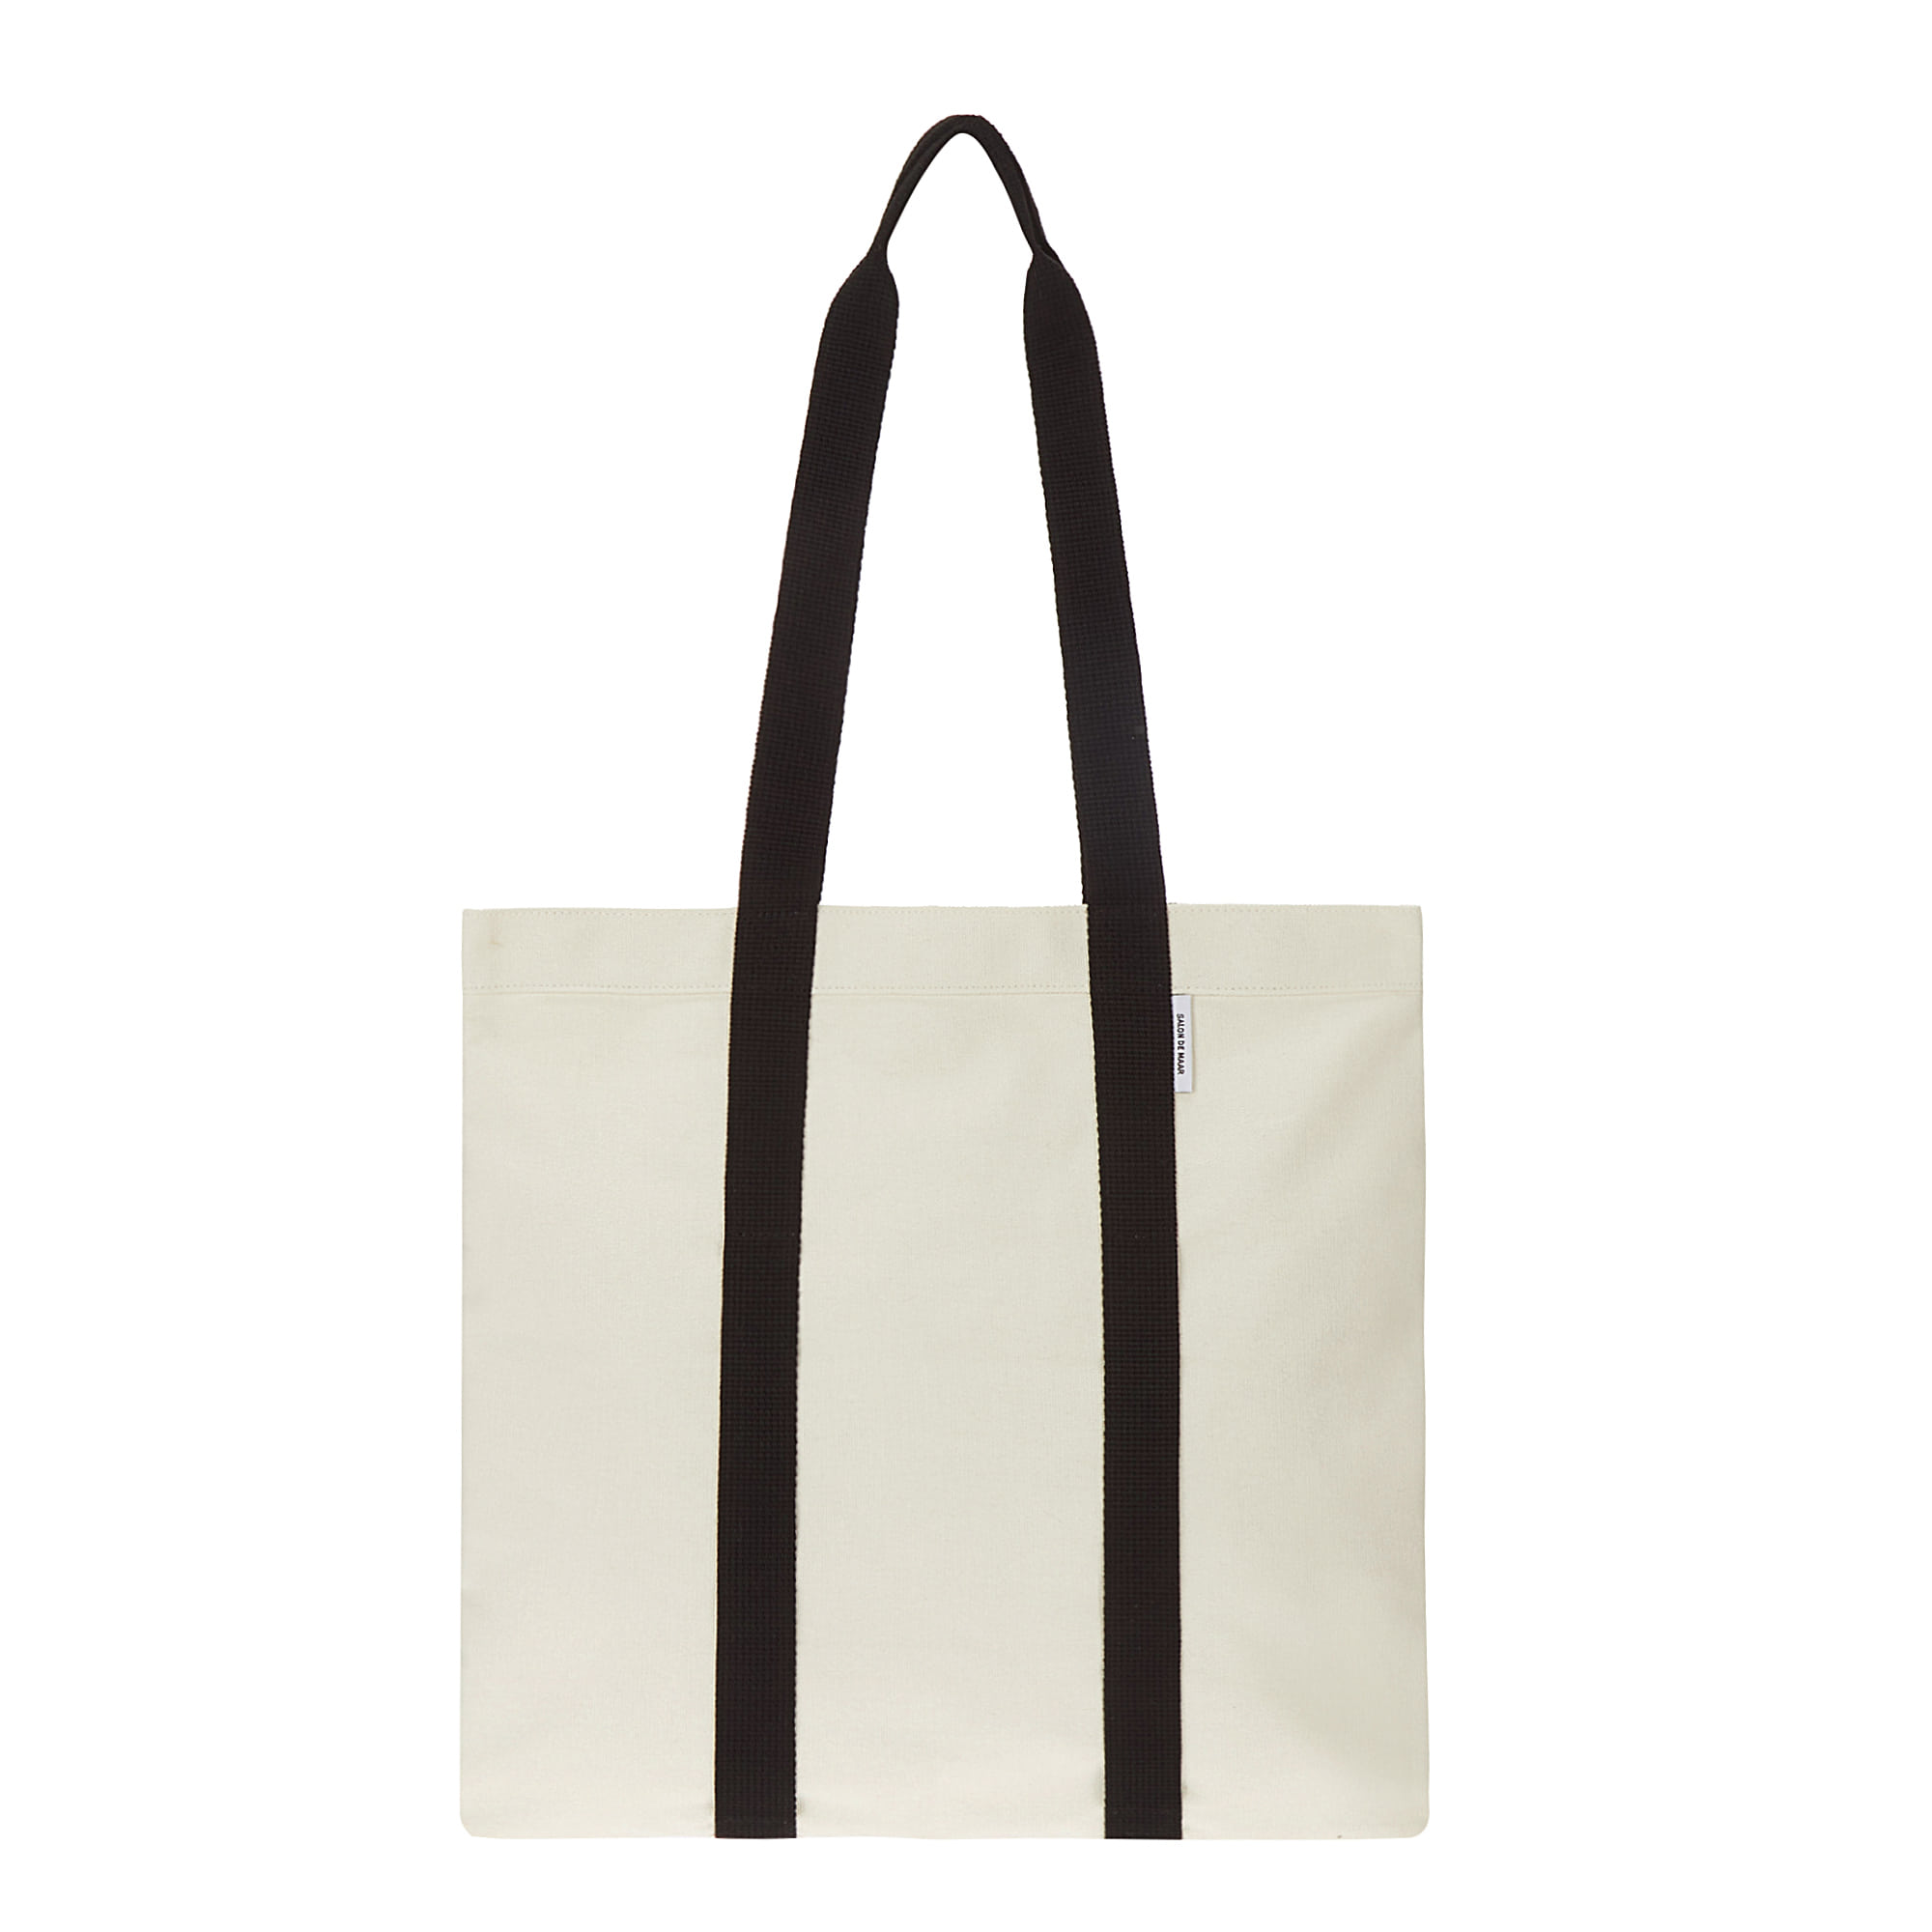 CARRY BAG BEIGE